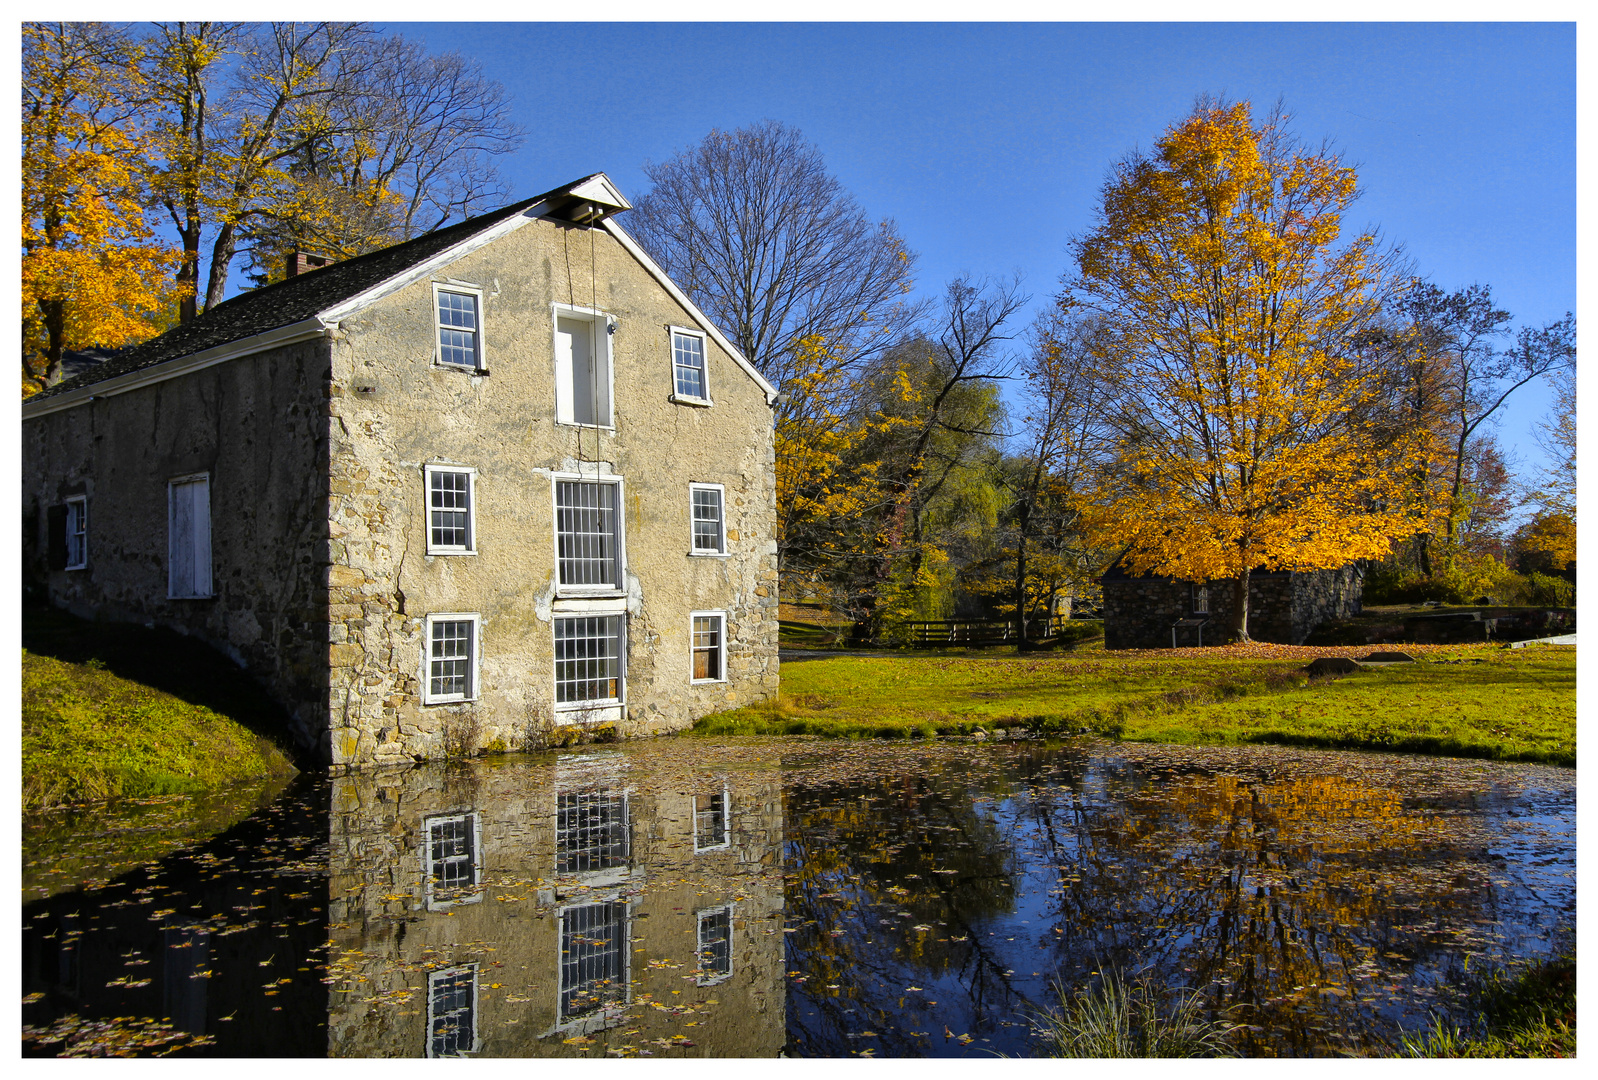 The Old Mill at Waterloo Village